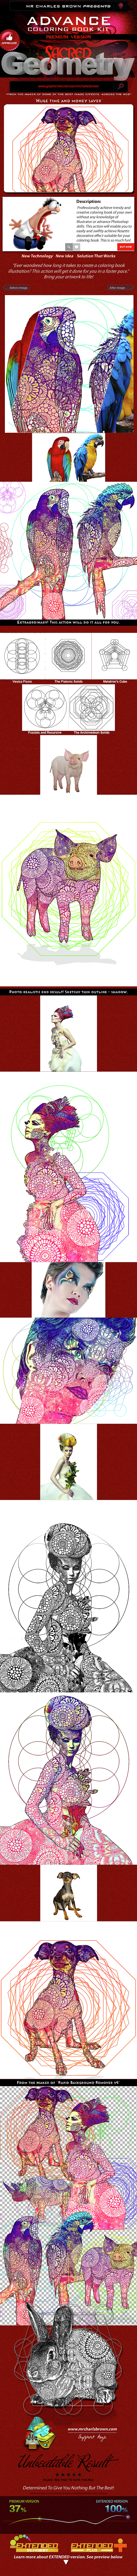 Advance Coloring Book Kit 2 – Sacred Geometry - Photo Effects Actions